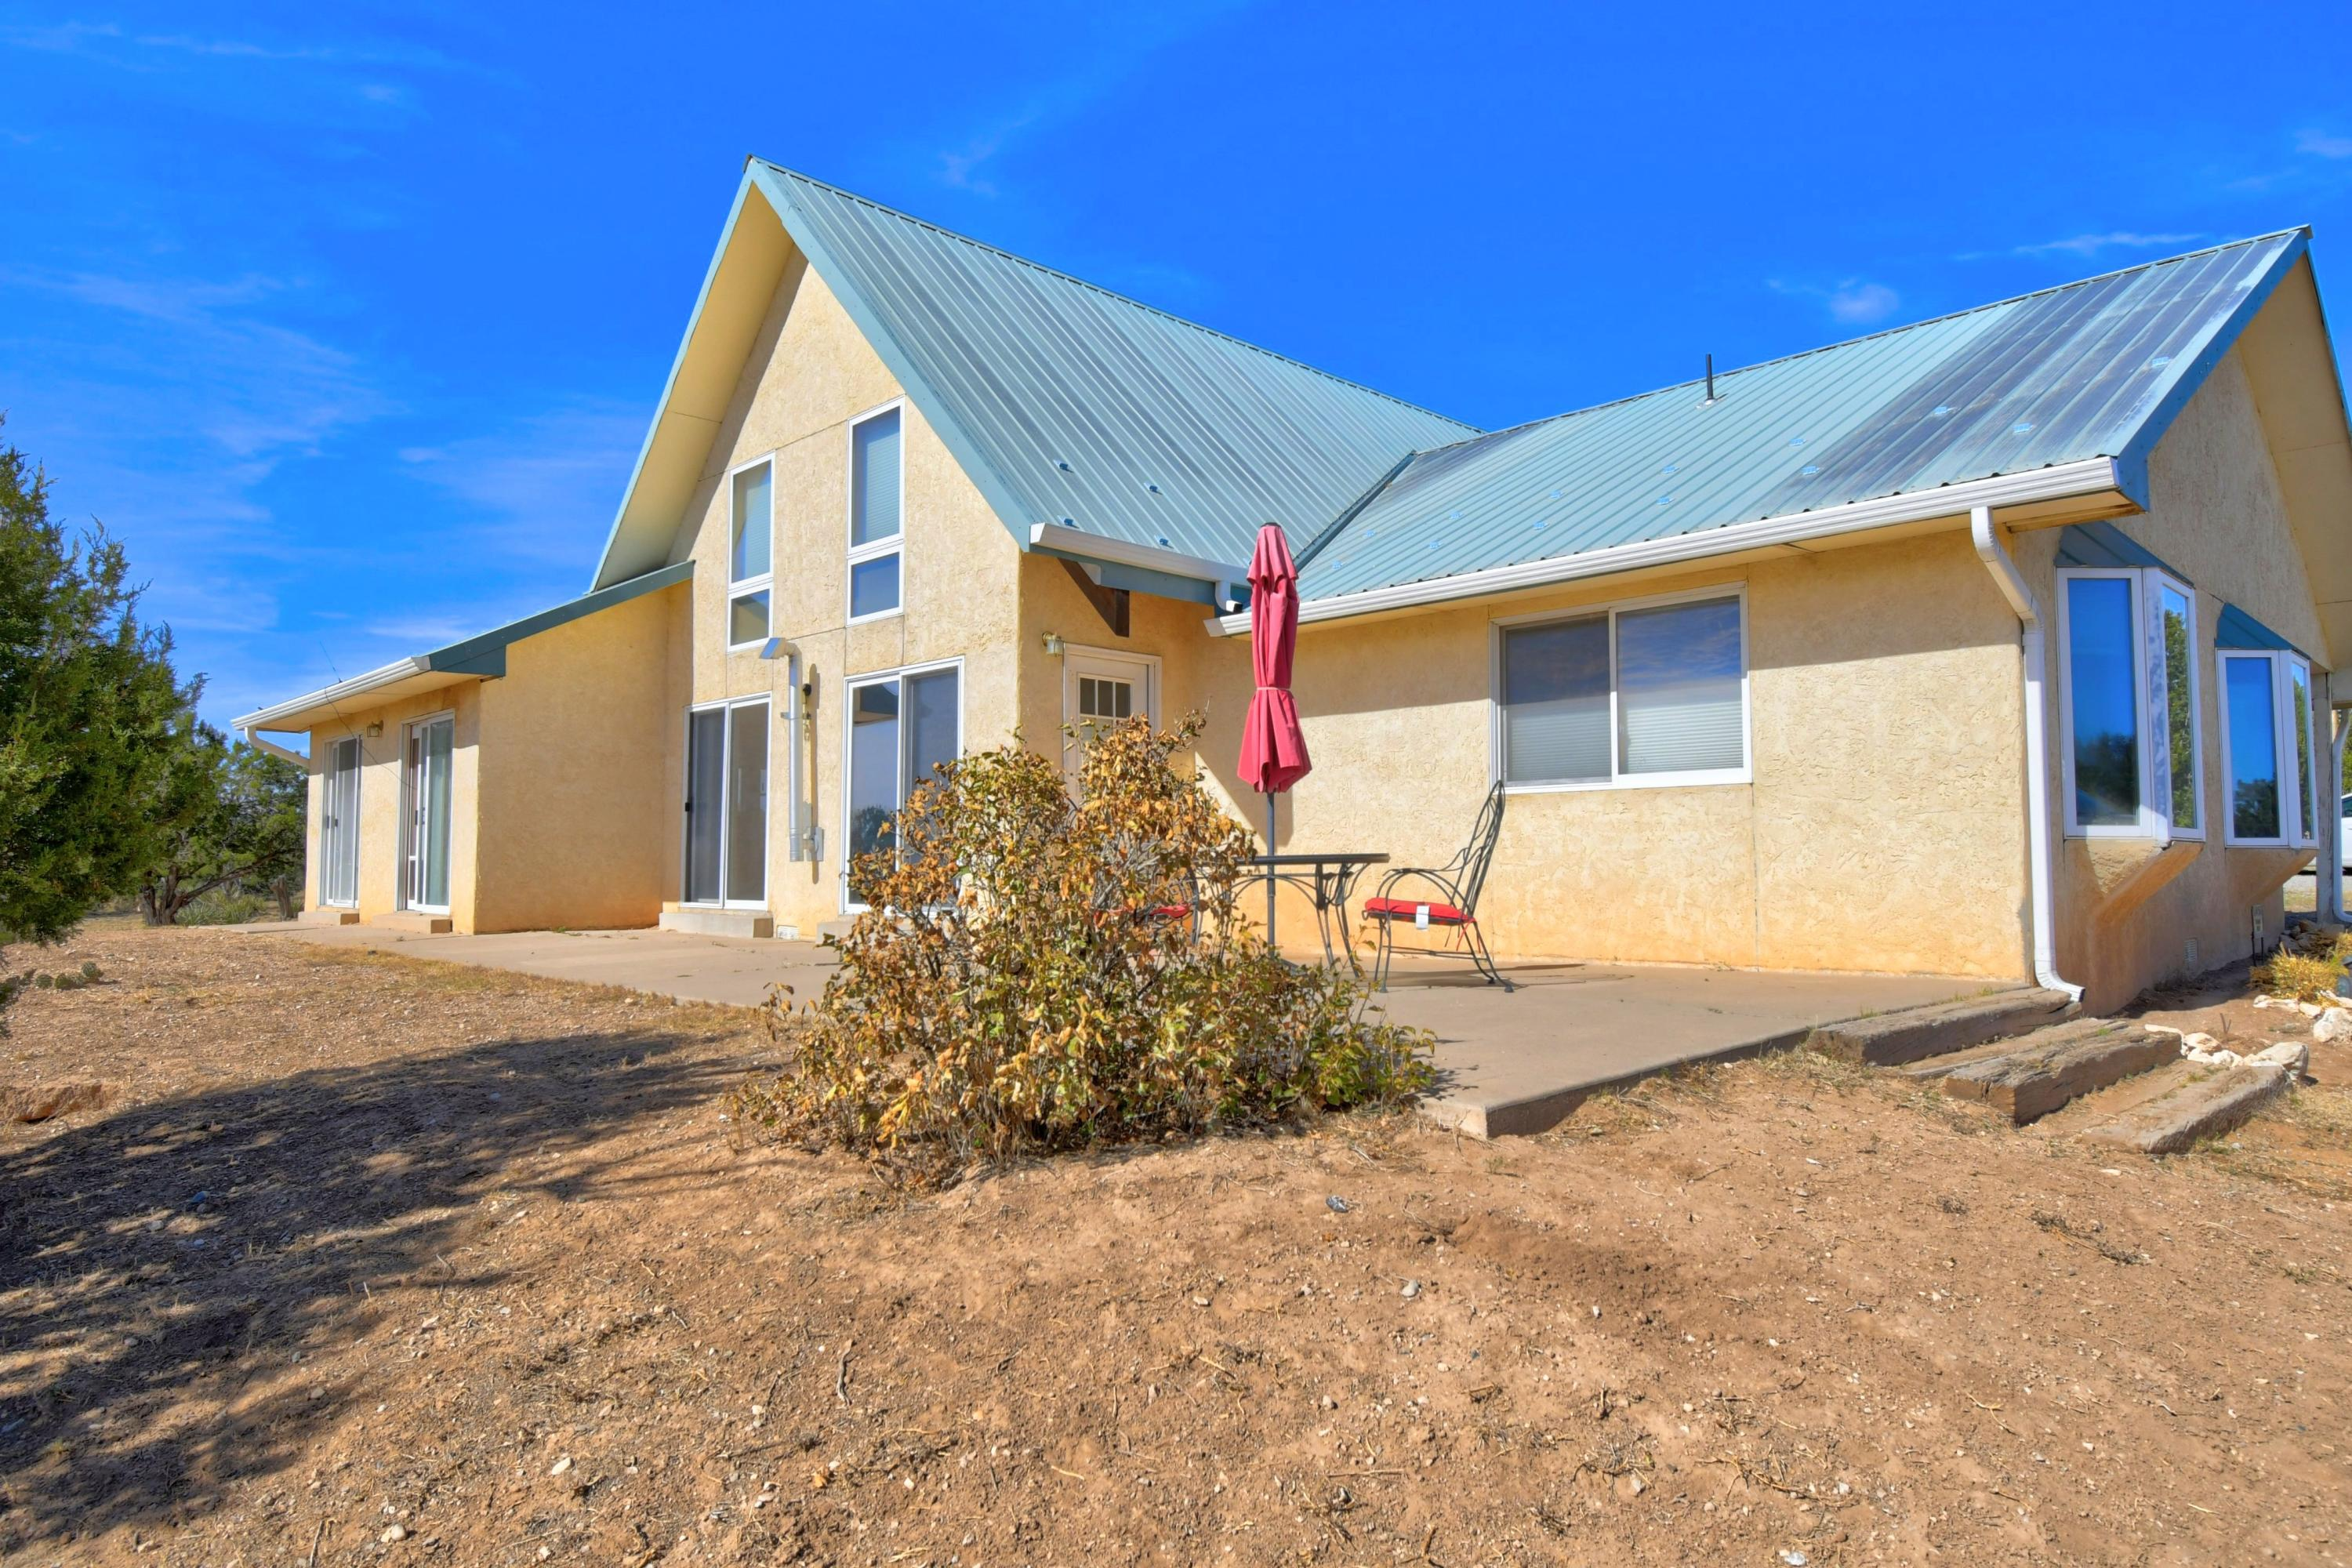 Bring your toys and your horses! Fully fenced 2.5 A with 3300 SqFt steel building on cement slab. Borders 100 A BLM land and only 6 minutes from Walmart! Beautiful 3 bedroom home with loft waiting for your personal​​‌​​​​‌​​‌‌​‌‌‌​​‌‌​‌‌‌​​‌‌​‌‌‌ touches!